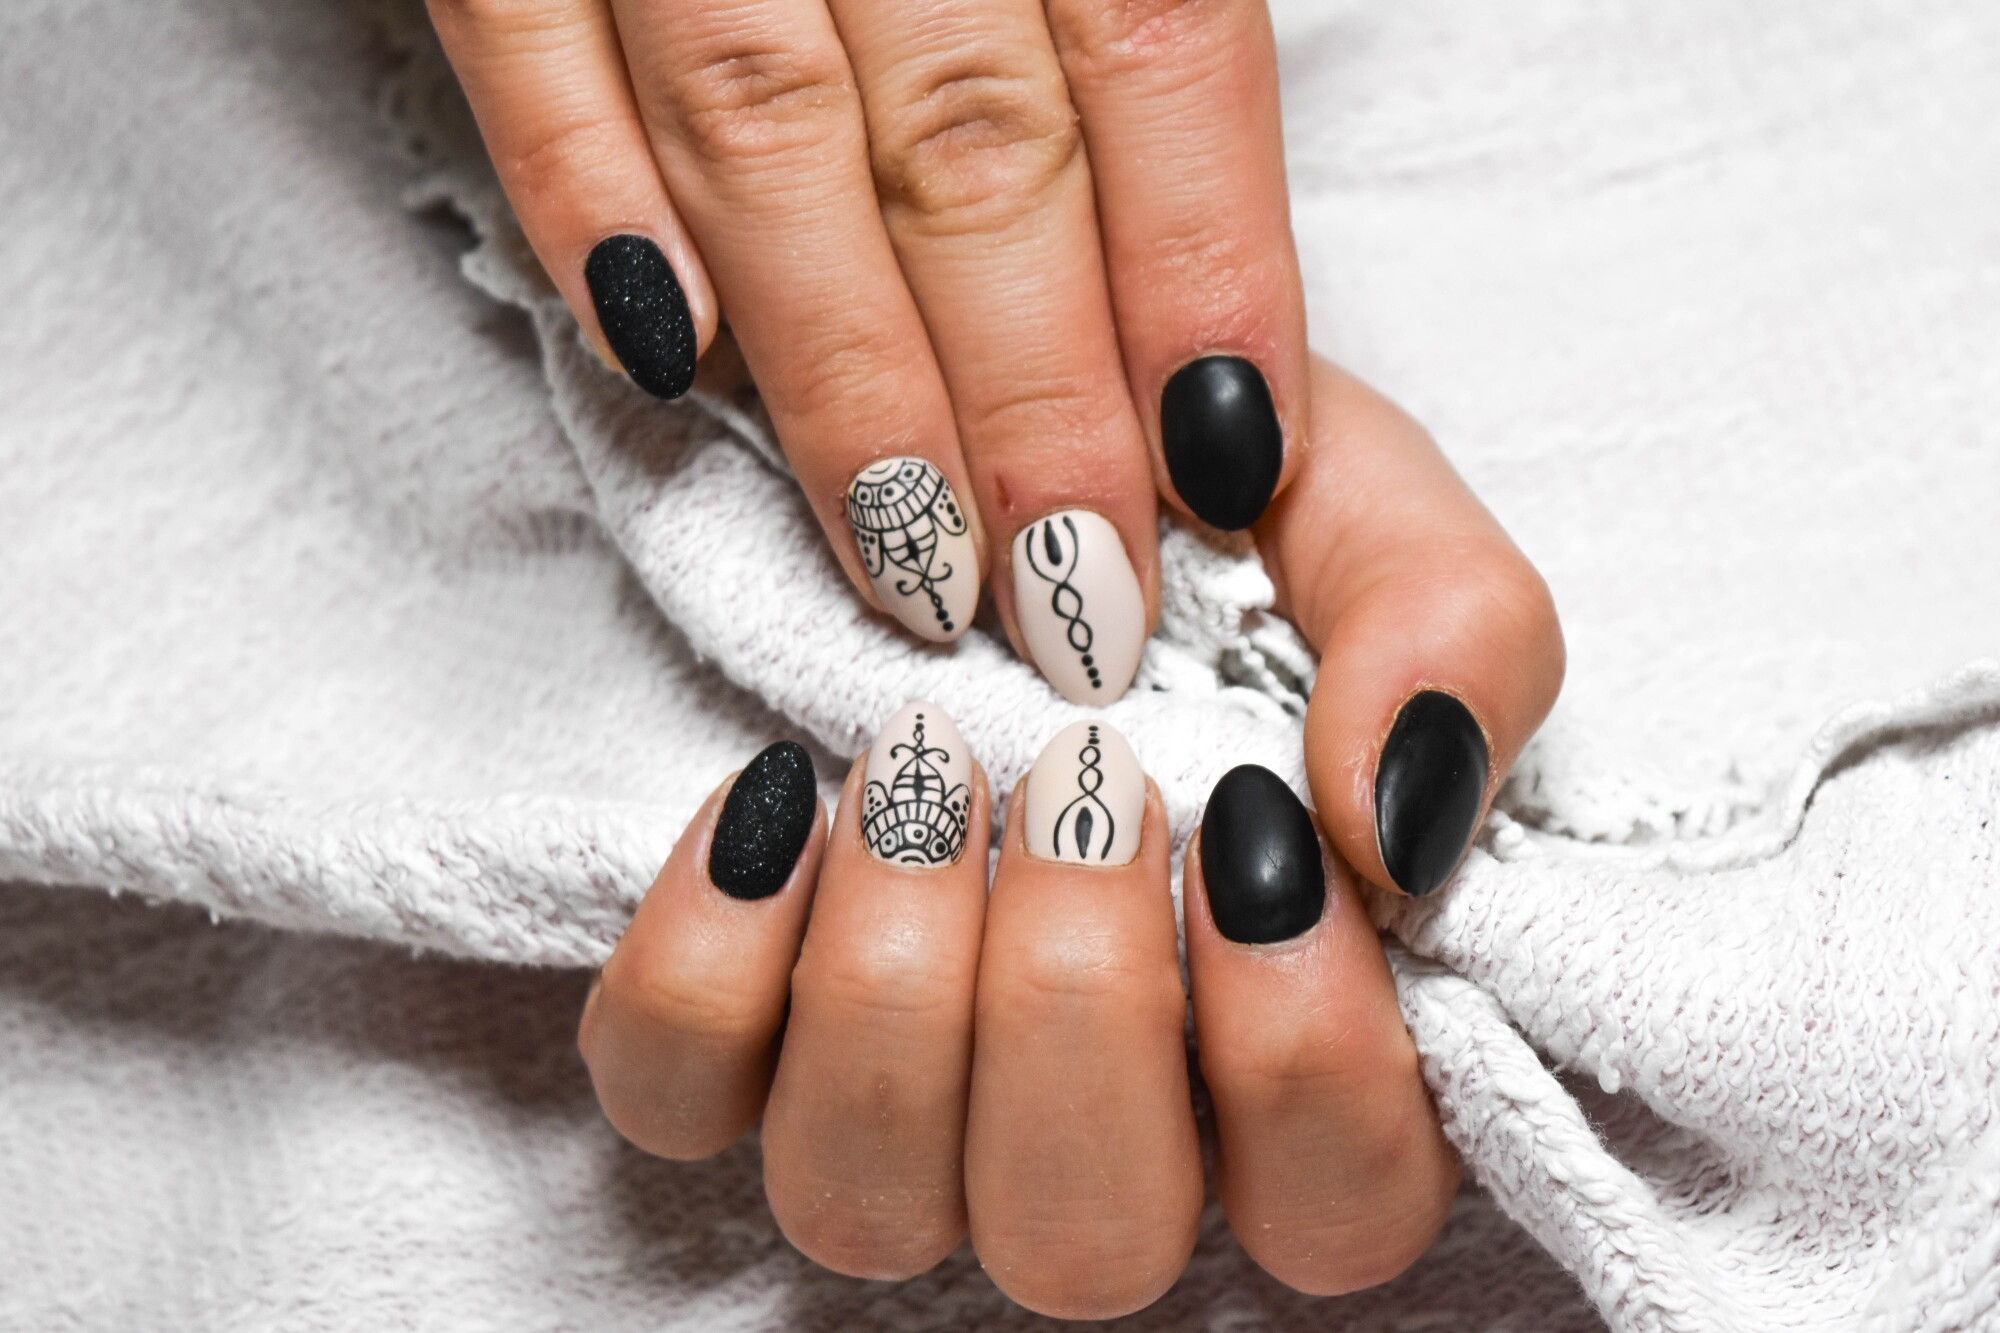 What Type of Nail Manicure Is Best For You?